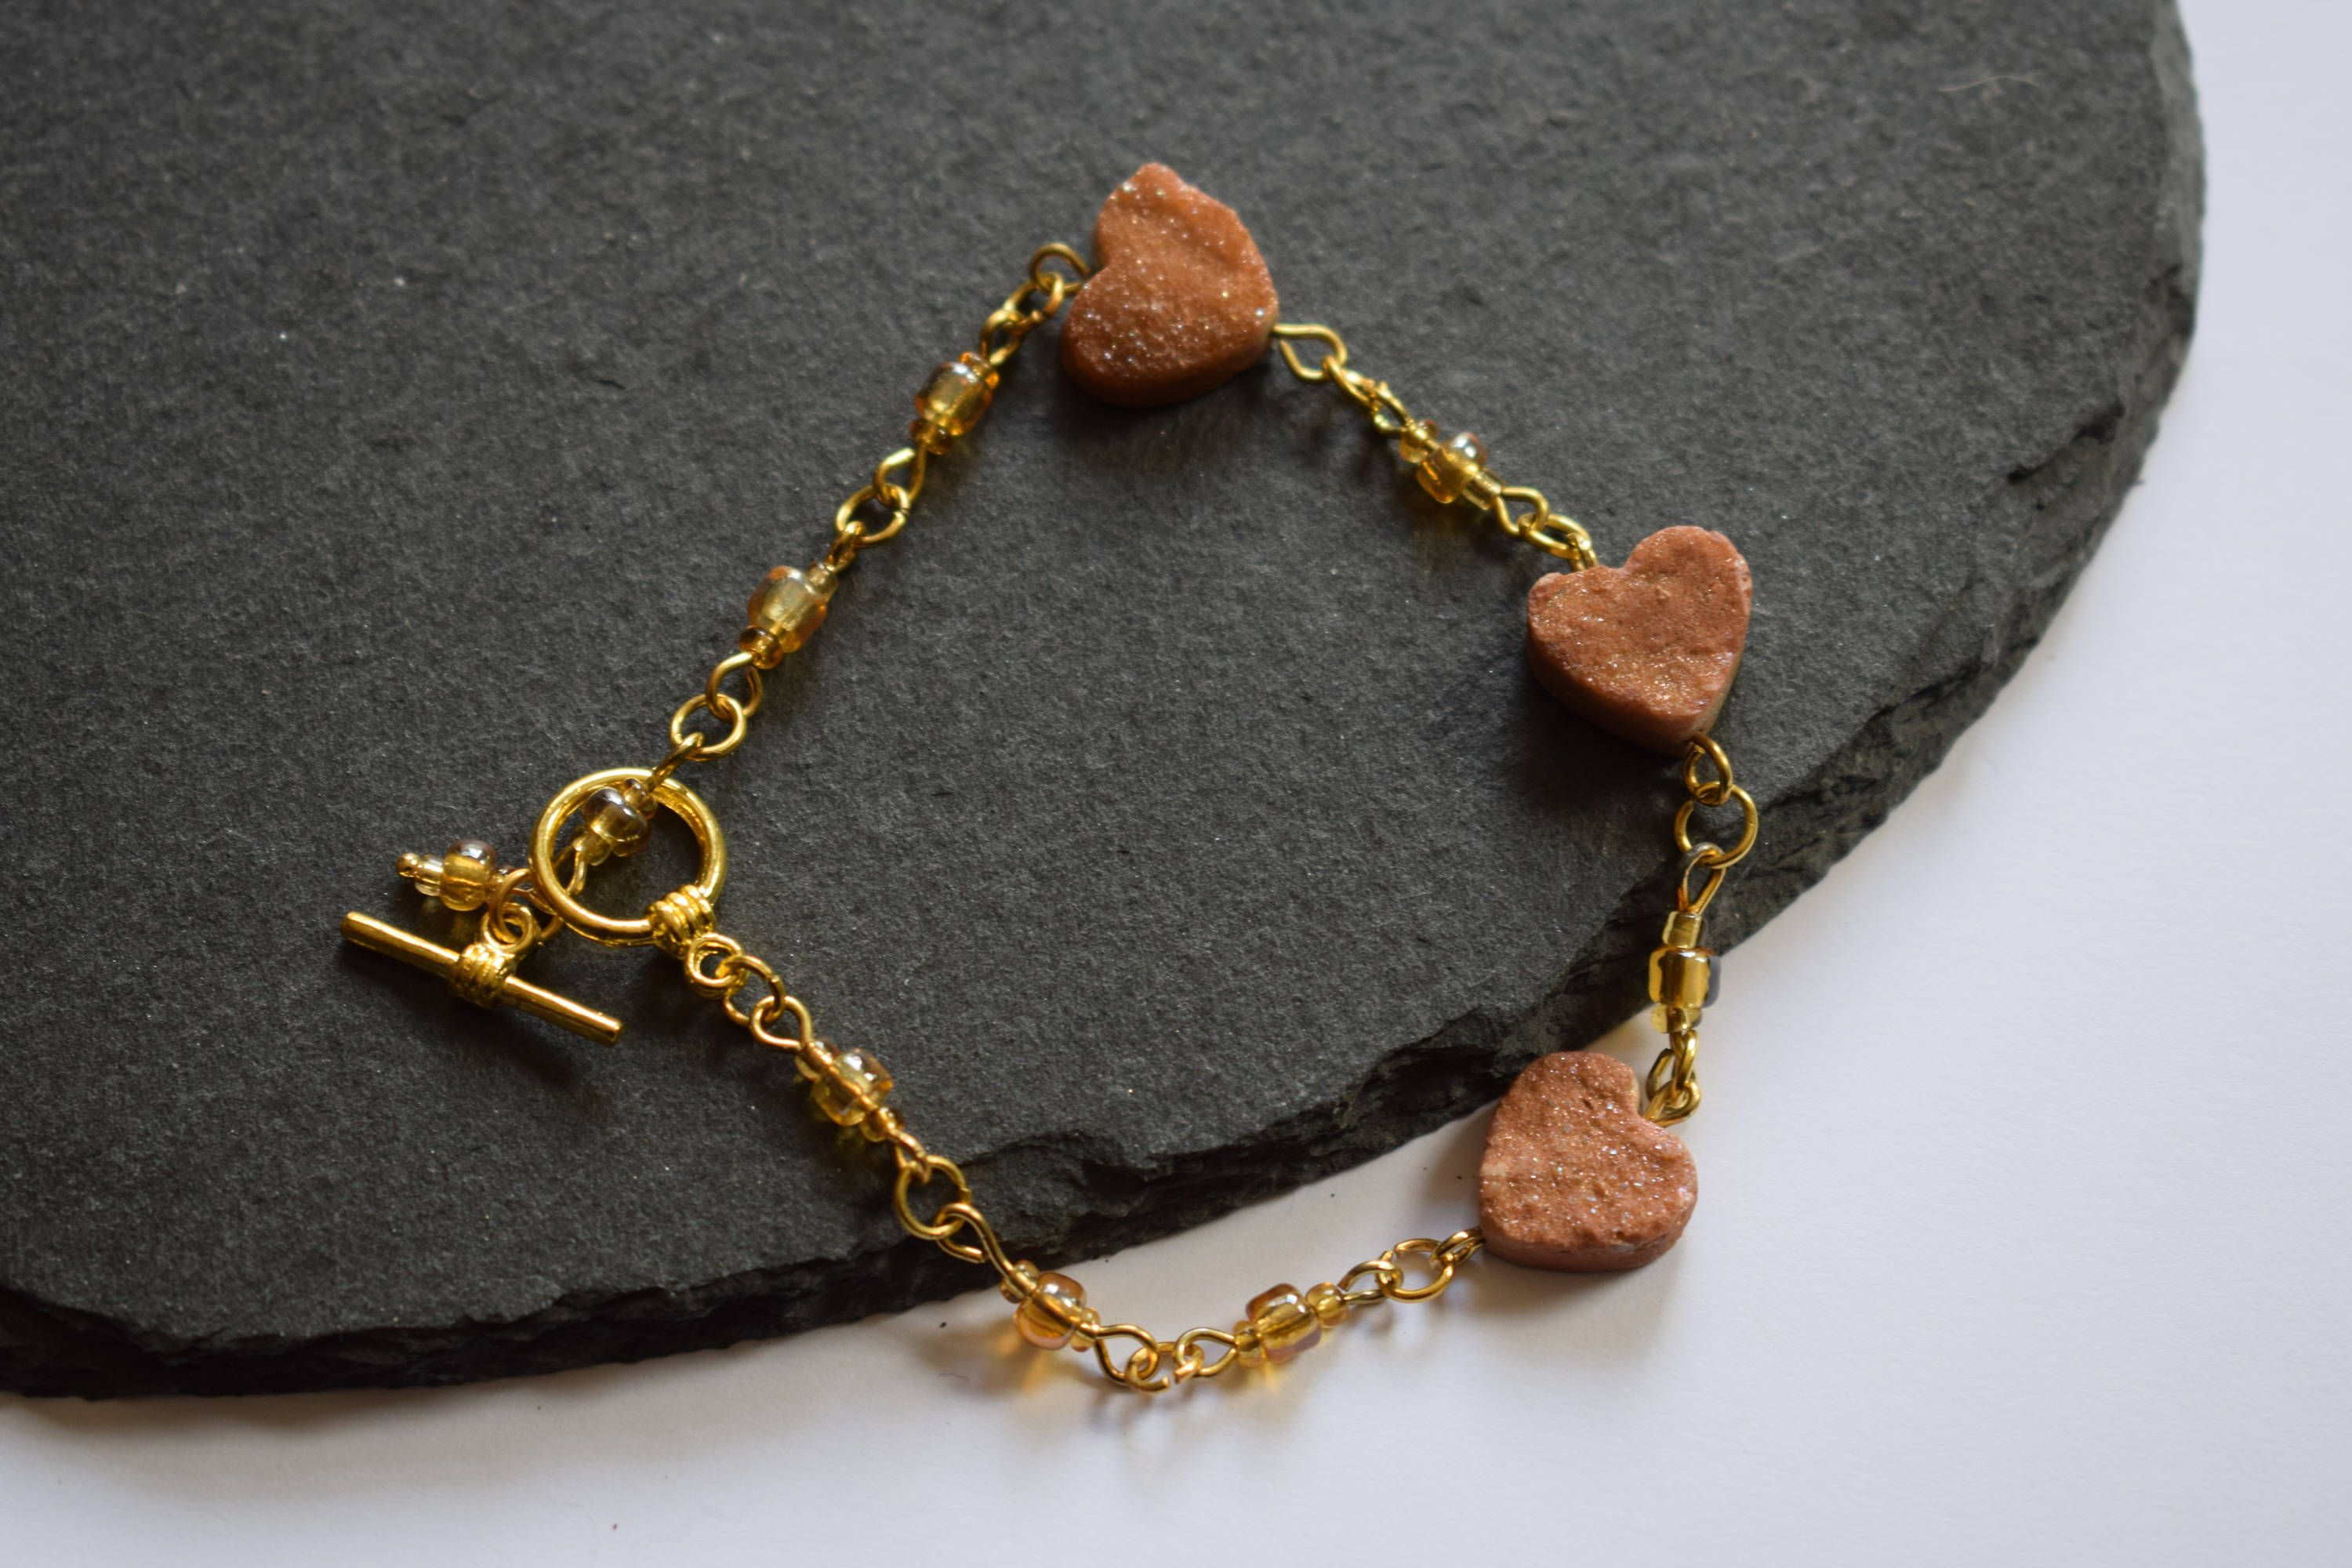 p a linked heart wood chain s bracelet silver earth bead initial dark small bronze stones il as with letter fullxfull hearts stretchy tones